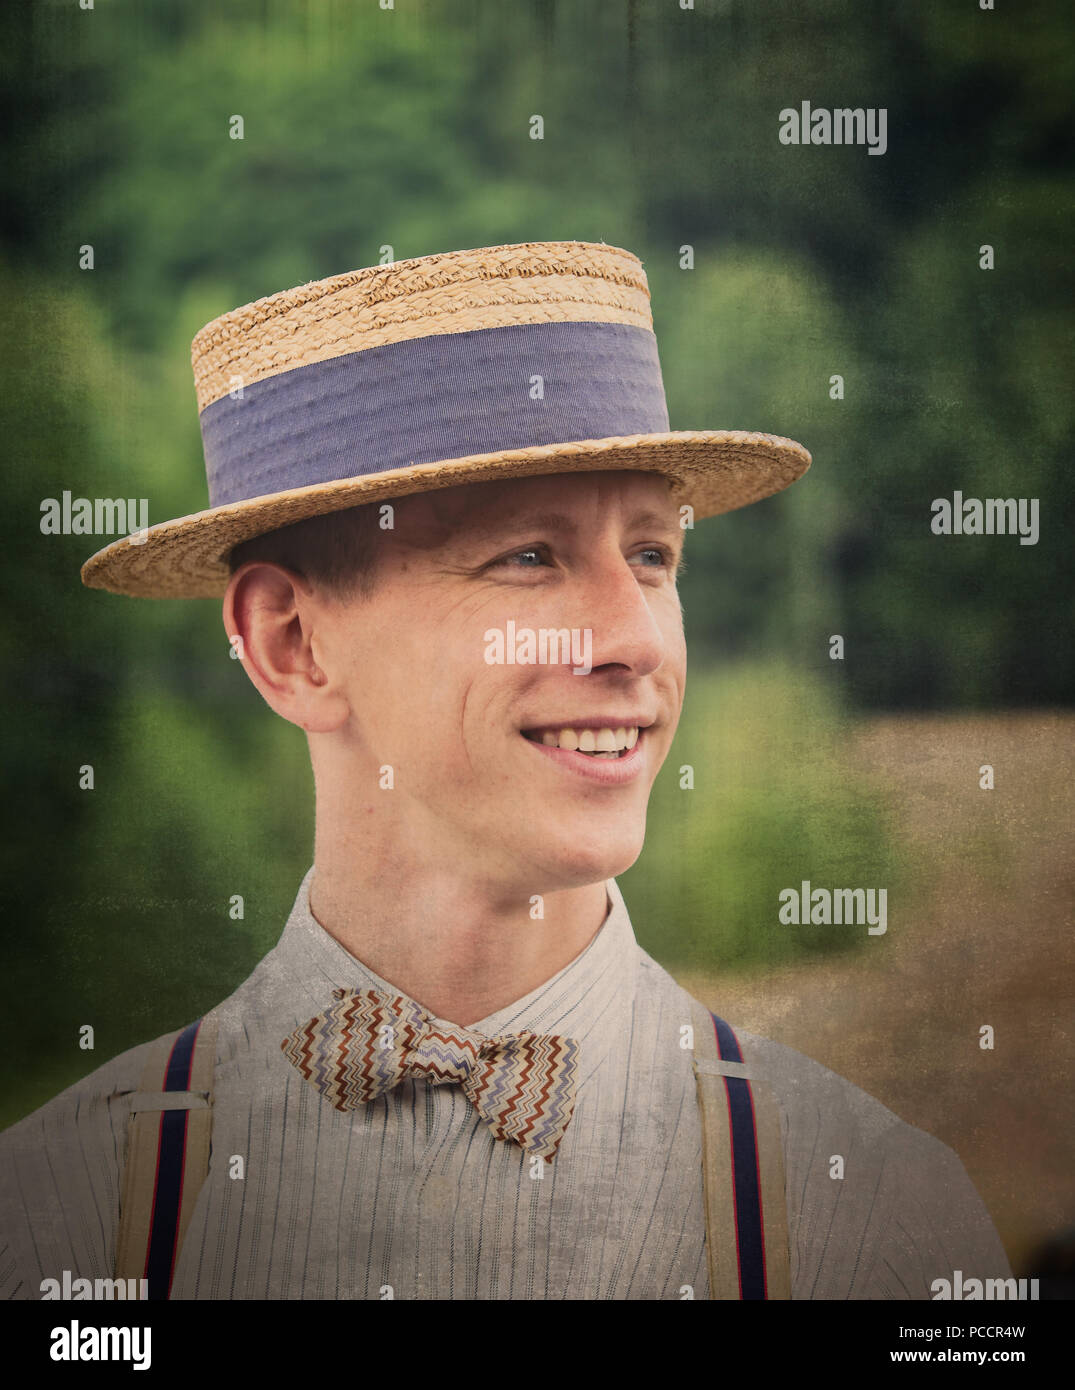 Close-up portrait of stylish young man in 1940's costume looking dapper in straw boater, bow tie & braces, at Black Country Museum 1940's WWII event. - Stock Image